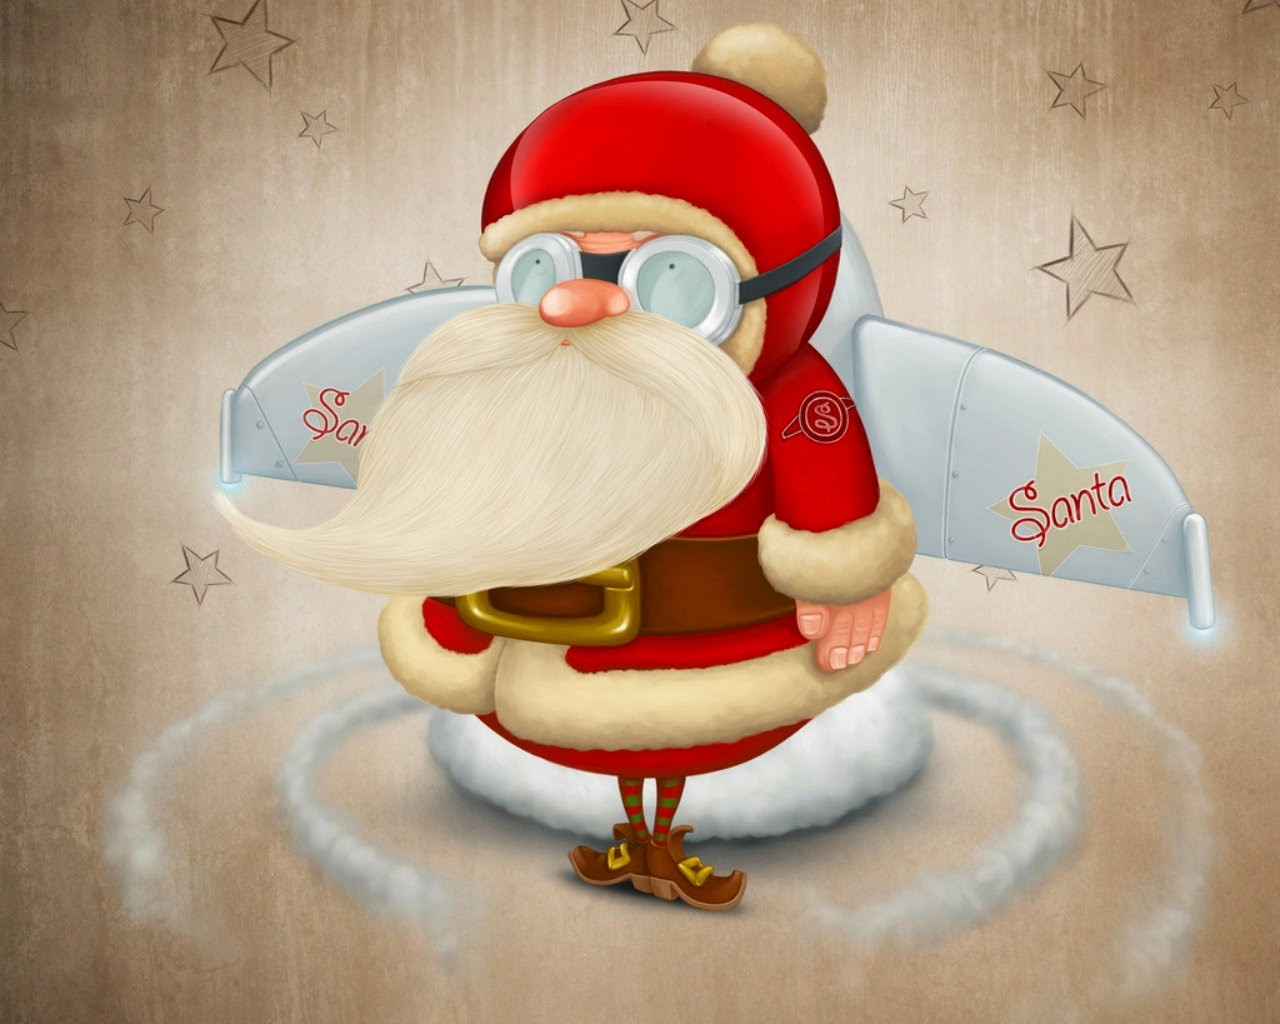 Santa-funny-pictures-images-photos-for-kids-1280x1024.jpg